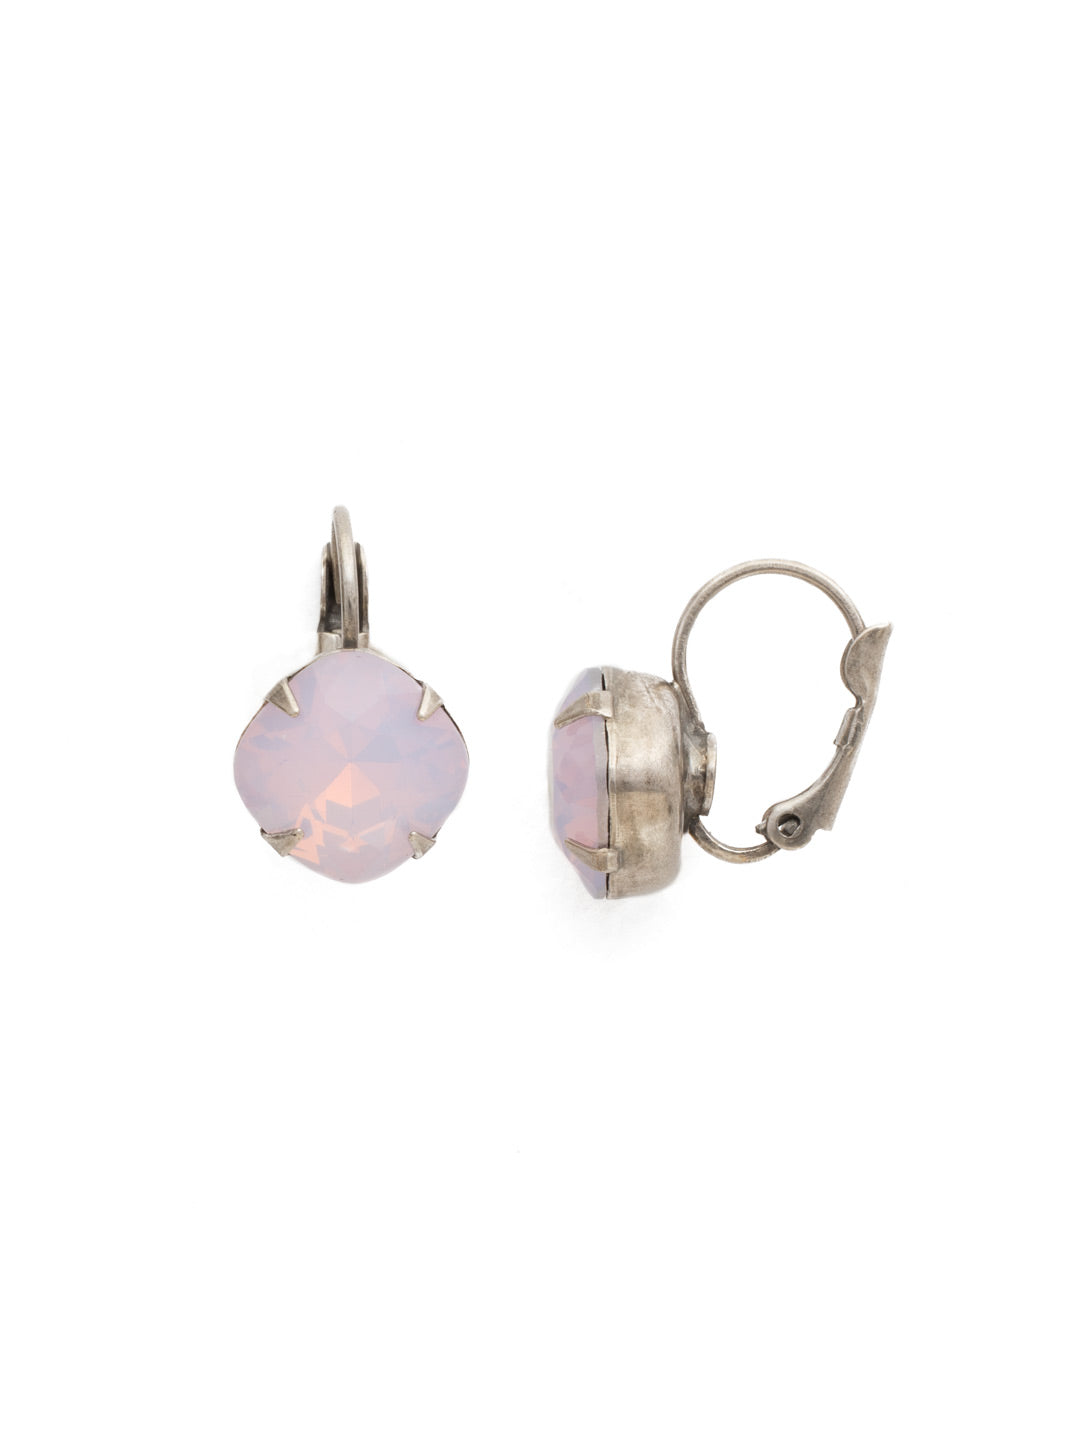 Cushion Cut French Wire Earrings - Sorrelli Essentials - EDL12ASROW